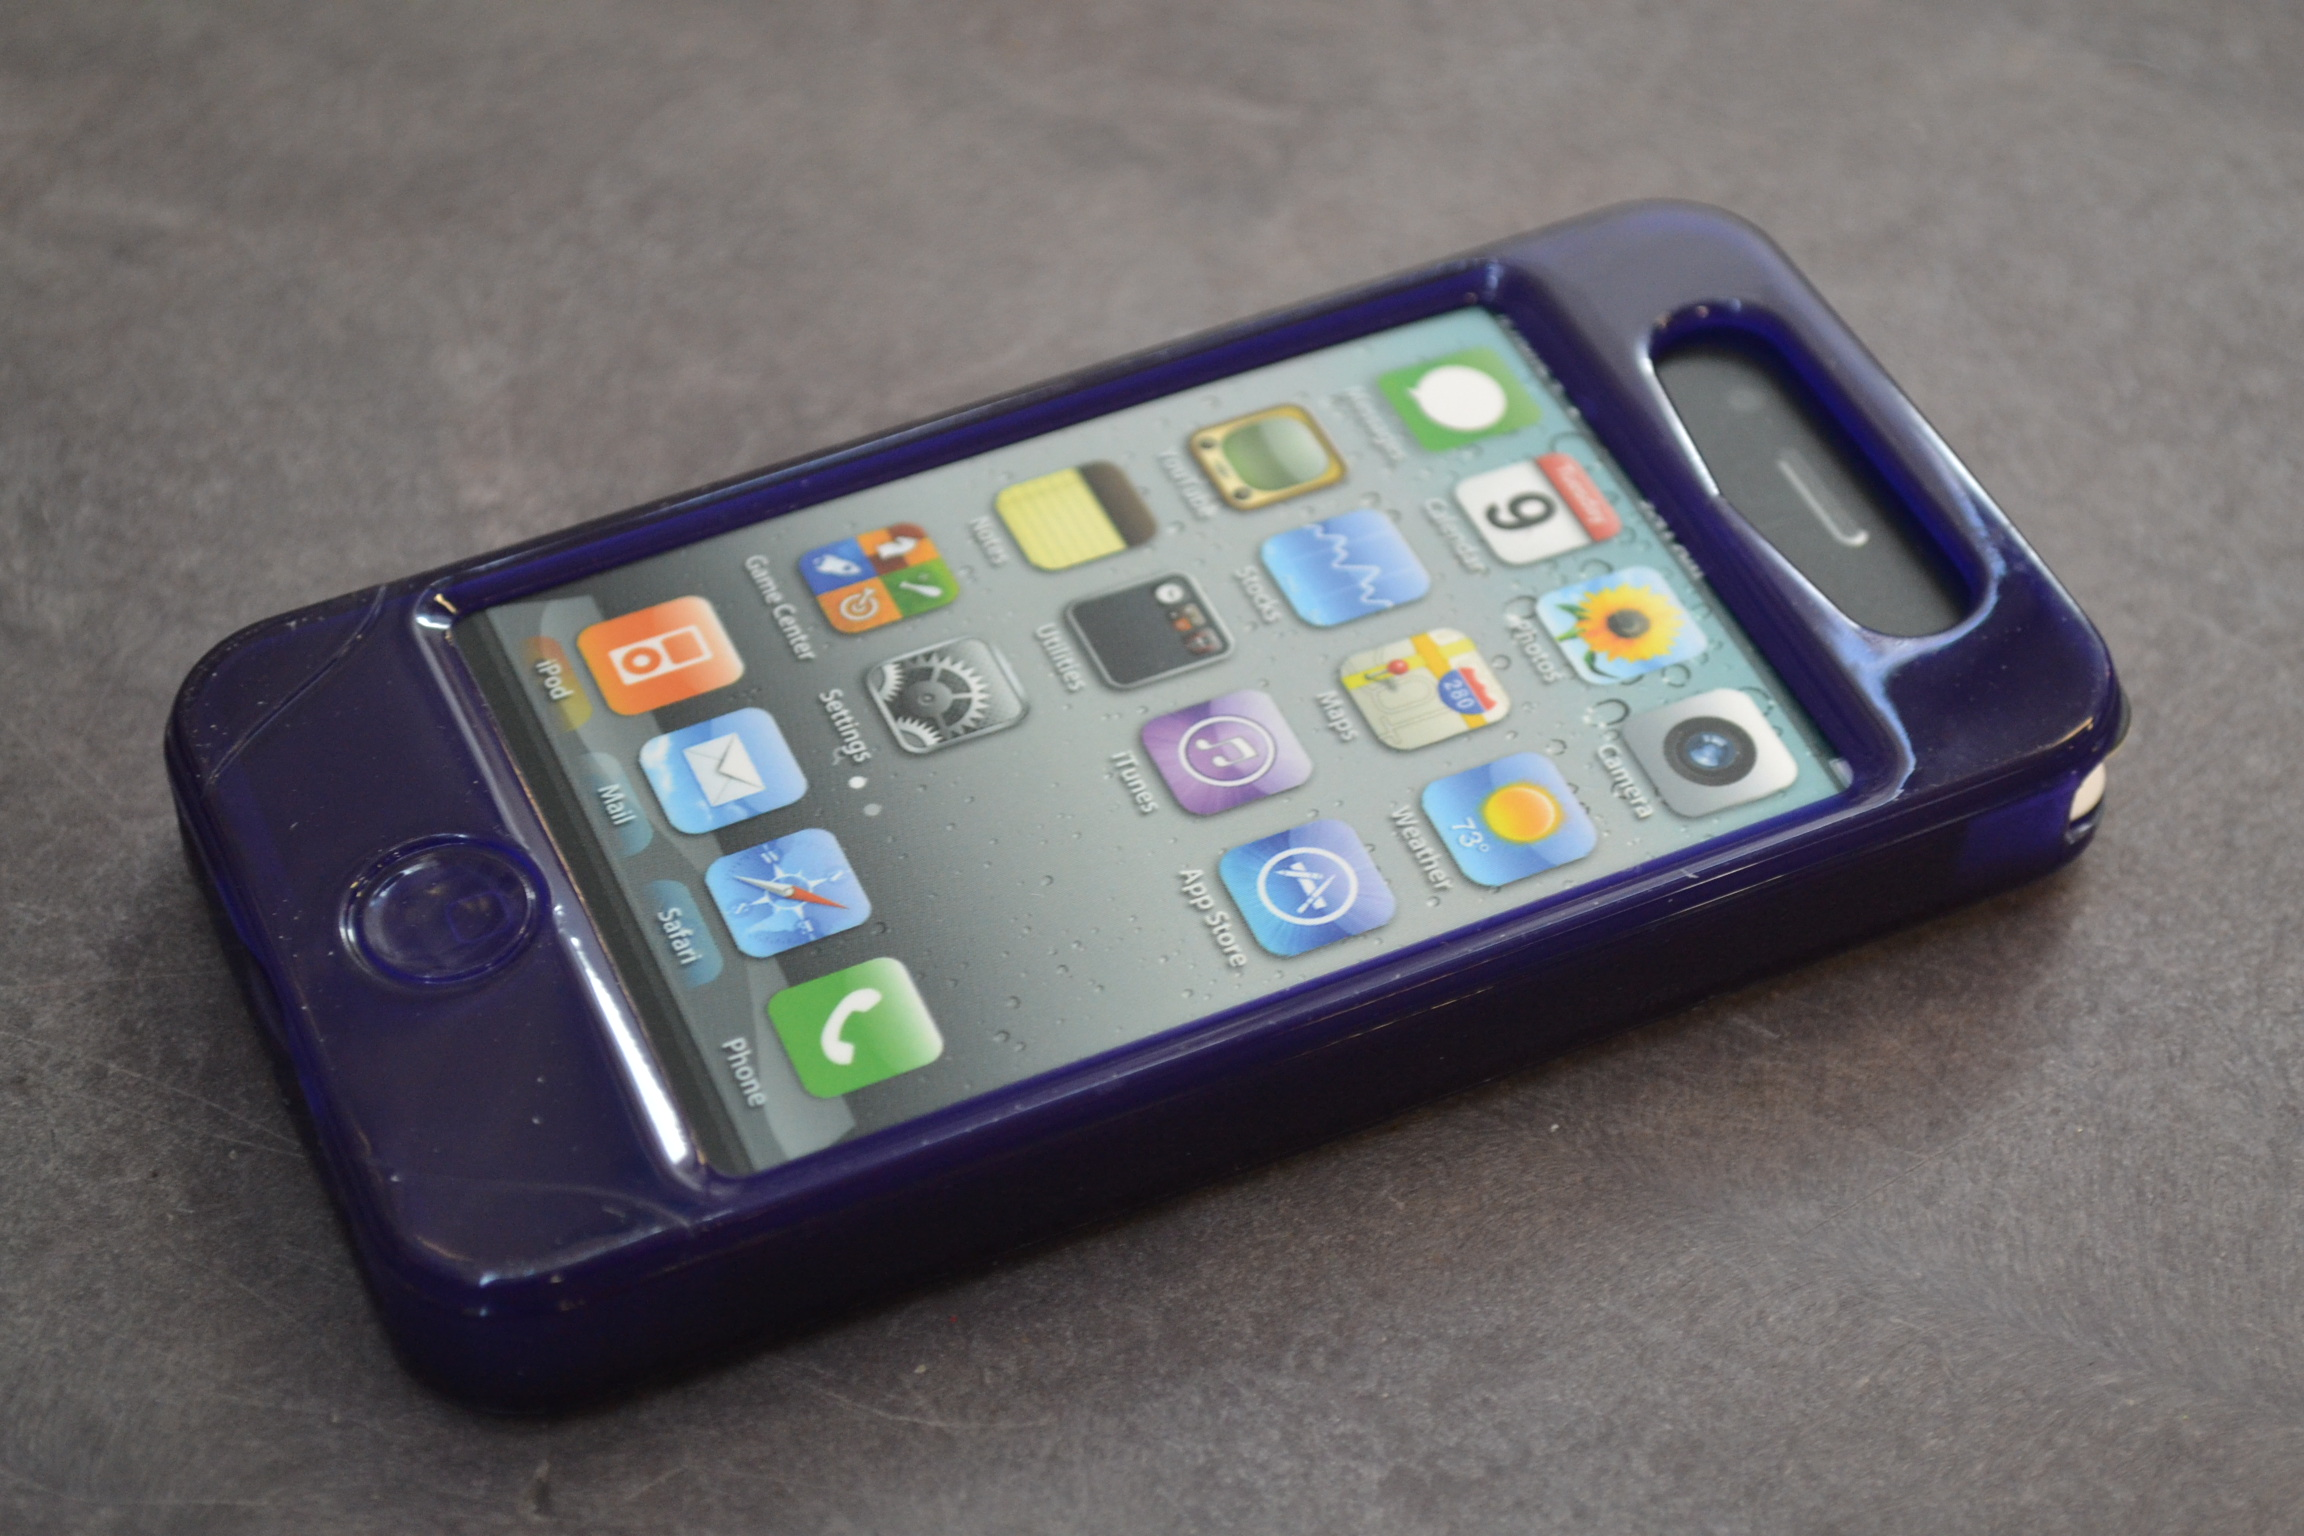 Image 1 of iSkin Solo Vu Purple Case For iPhone 4G